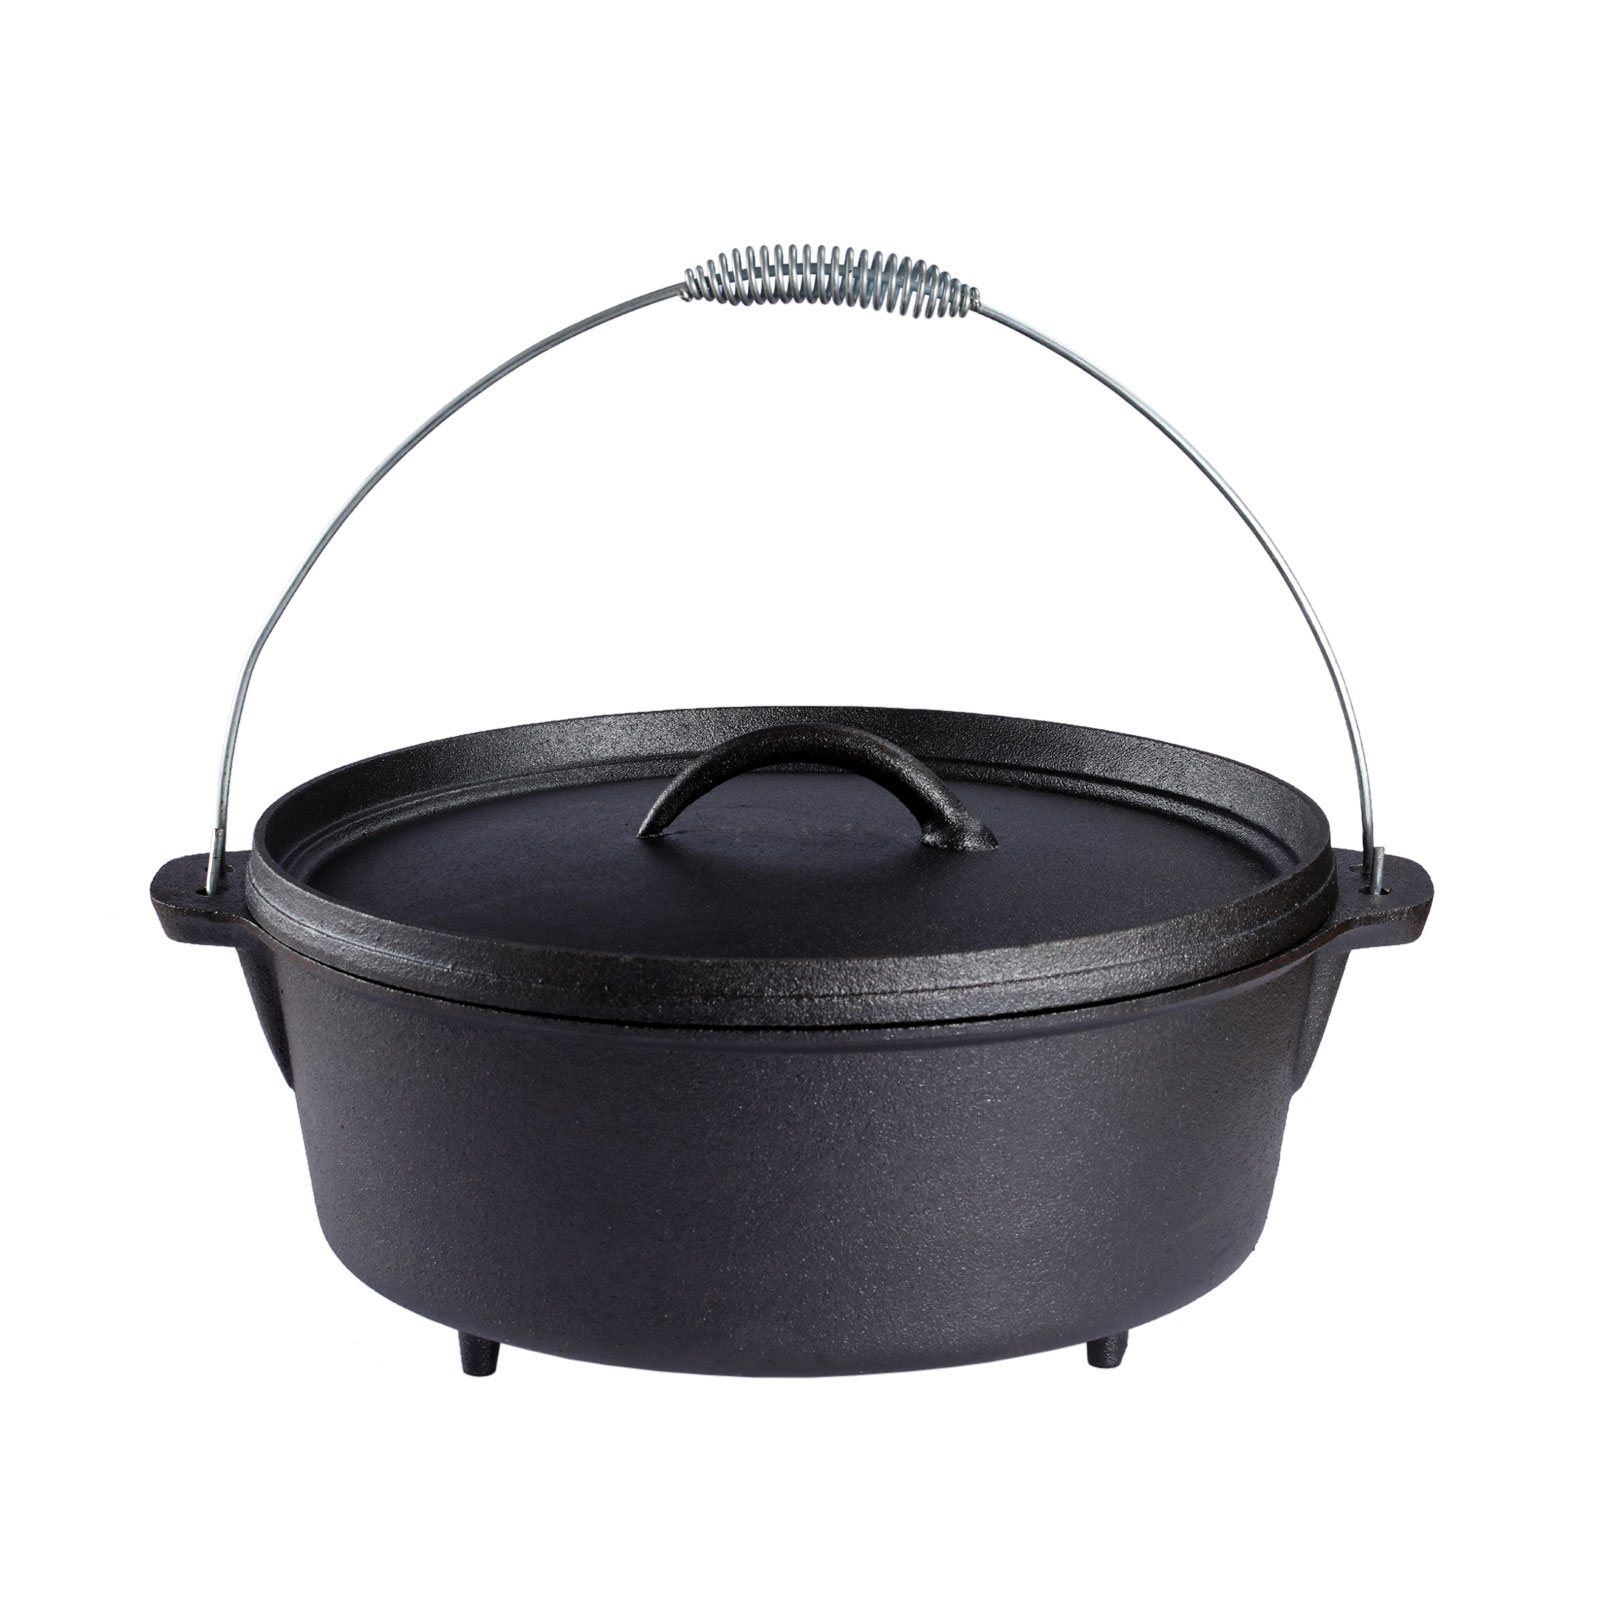 12 quart cast iron dutch oven pot outdoor kitchen campfire for Healthy dutch oven camping recipes